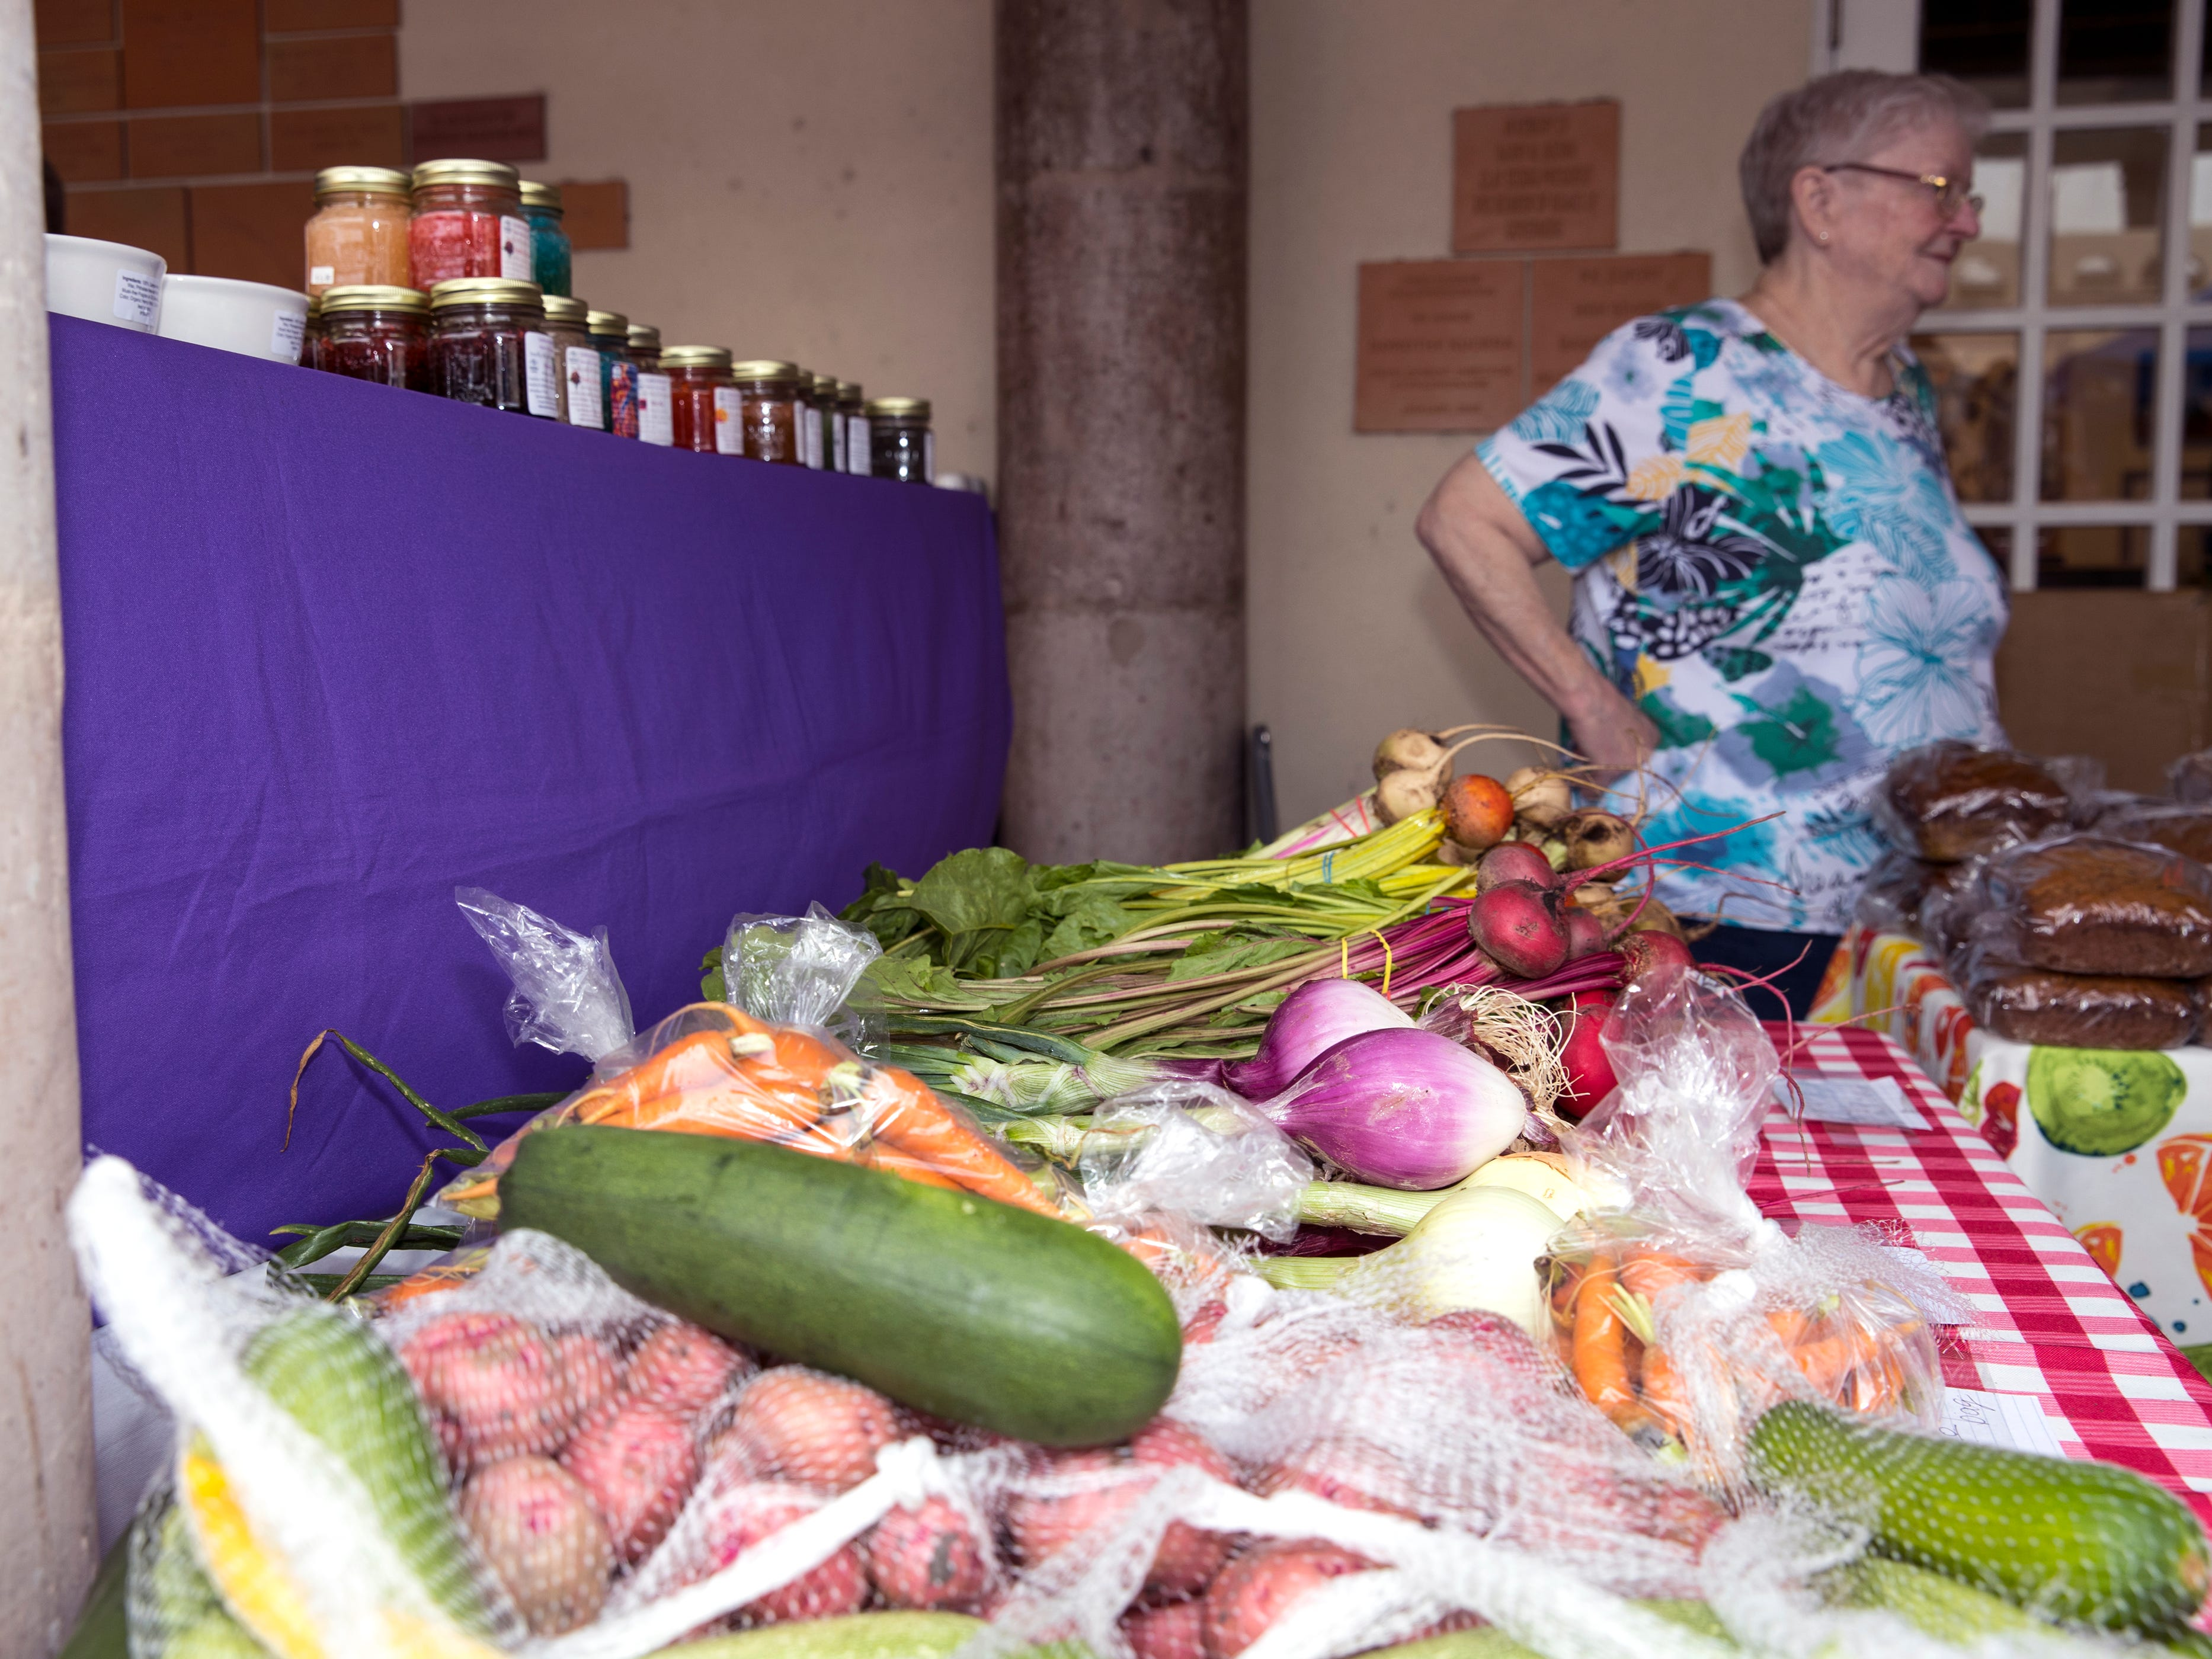 Nancy Weaver helps customers at the Corpus Christi Downtown Farmers Market on Wednesday, April 24, 2019. The farmers market offers a variety of seasonal produce, grass fed beef, pastured raised poultry, prepared goods such as roasted coffee, sweets and preserves and baked goods. It is open weekly on Wednesday from 5 to 8 pm at 100 N. Shoreline Blvd.